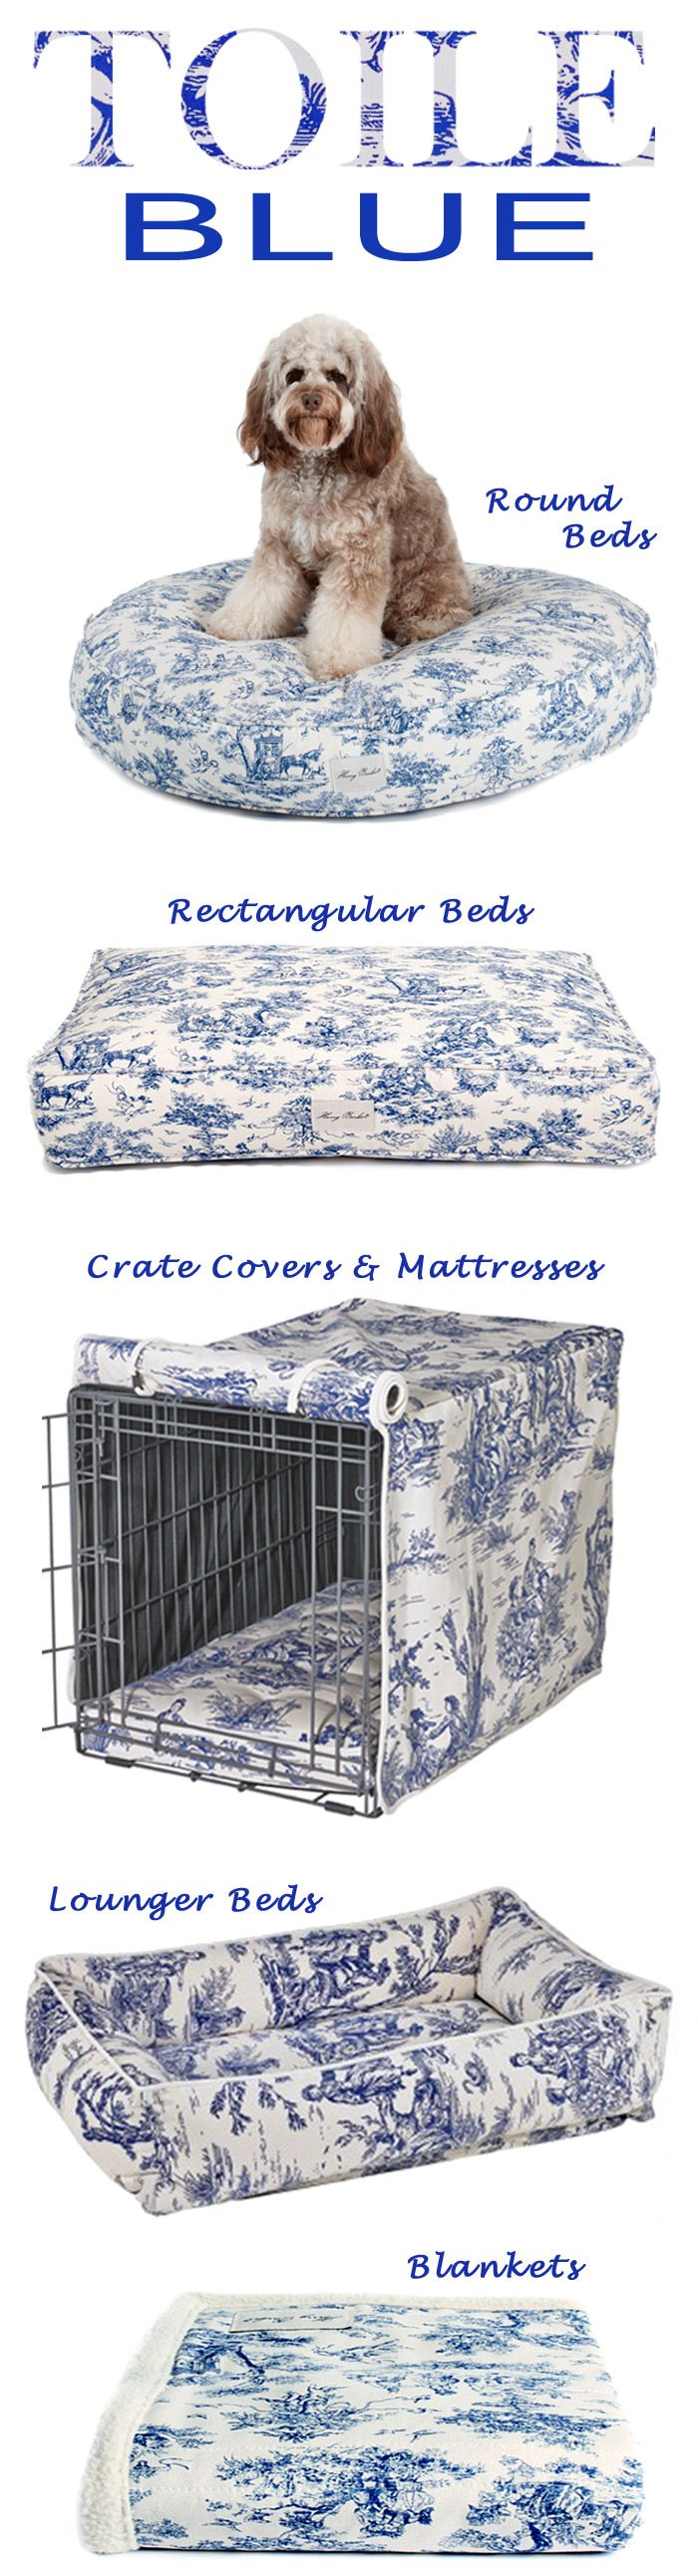 For the love of blue toile! Why stop with your interior decor when you can have your dog's bed, crate cover, pillows and/or blanket wrapped in toile? Perfect French accent!